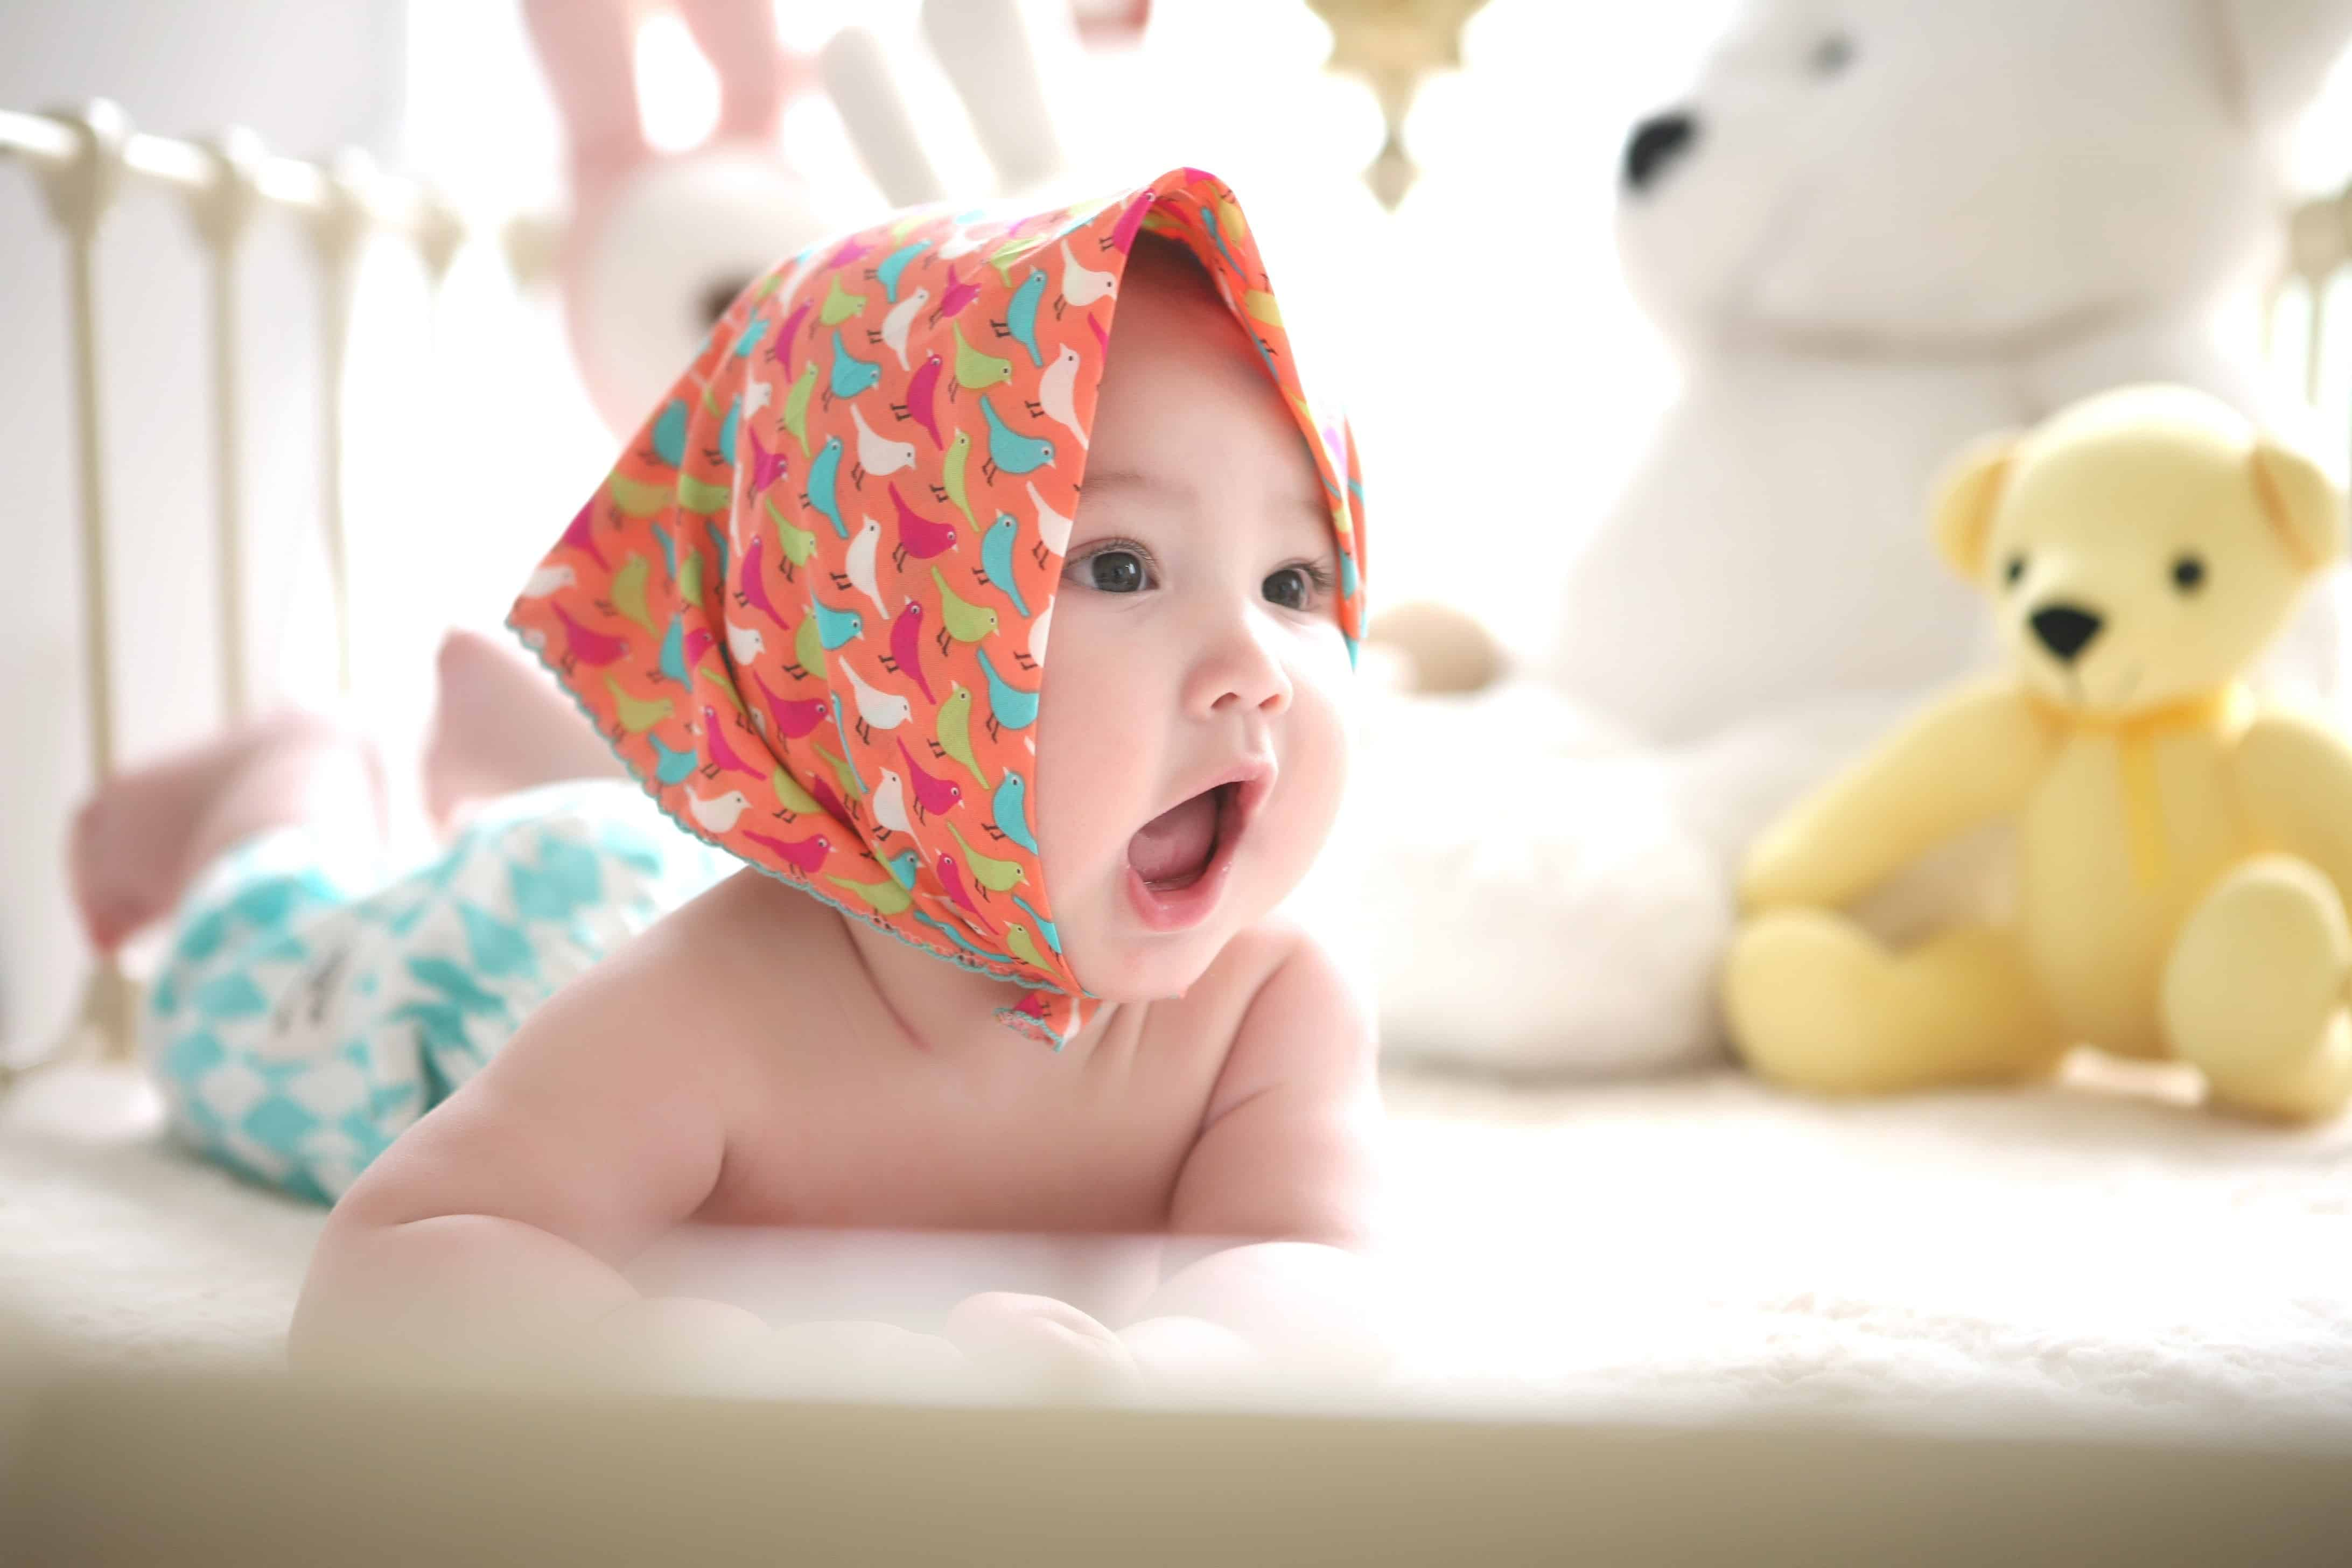 How to Keep Toddler in Crib (and Keep Your Sanity): Use the Crib Wisely